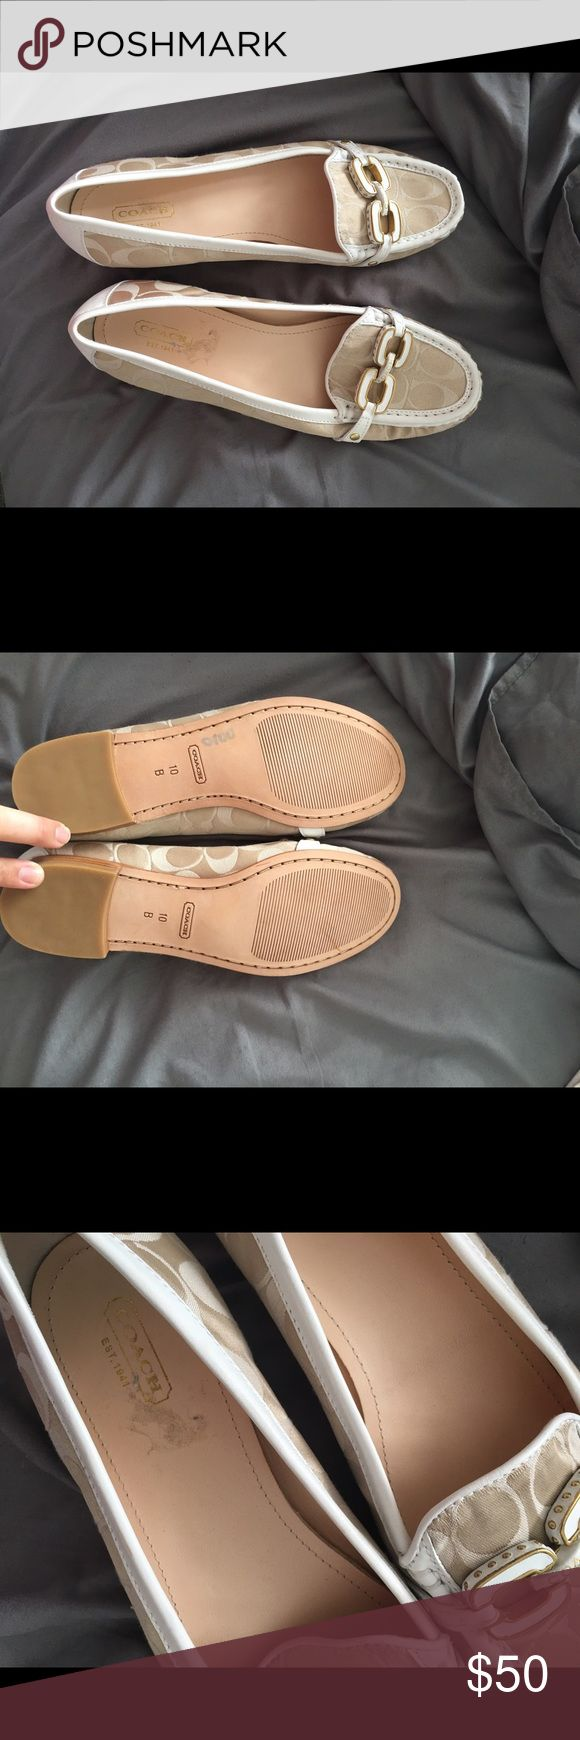 Coach size 10 Coach flats size 10 never worn just a little spot from sticker inside as pictured Coach Shoes Flats & Loafers